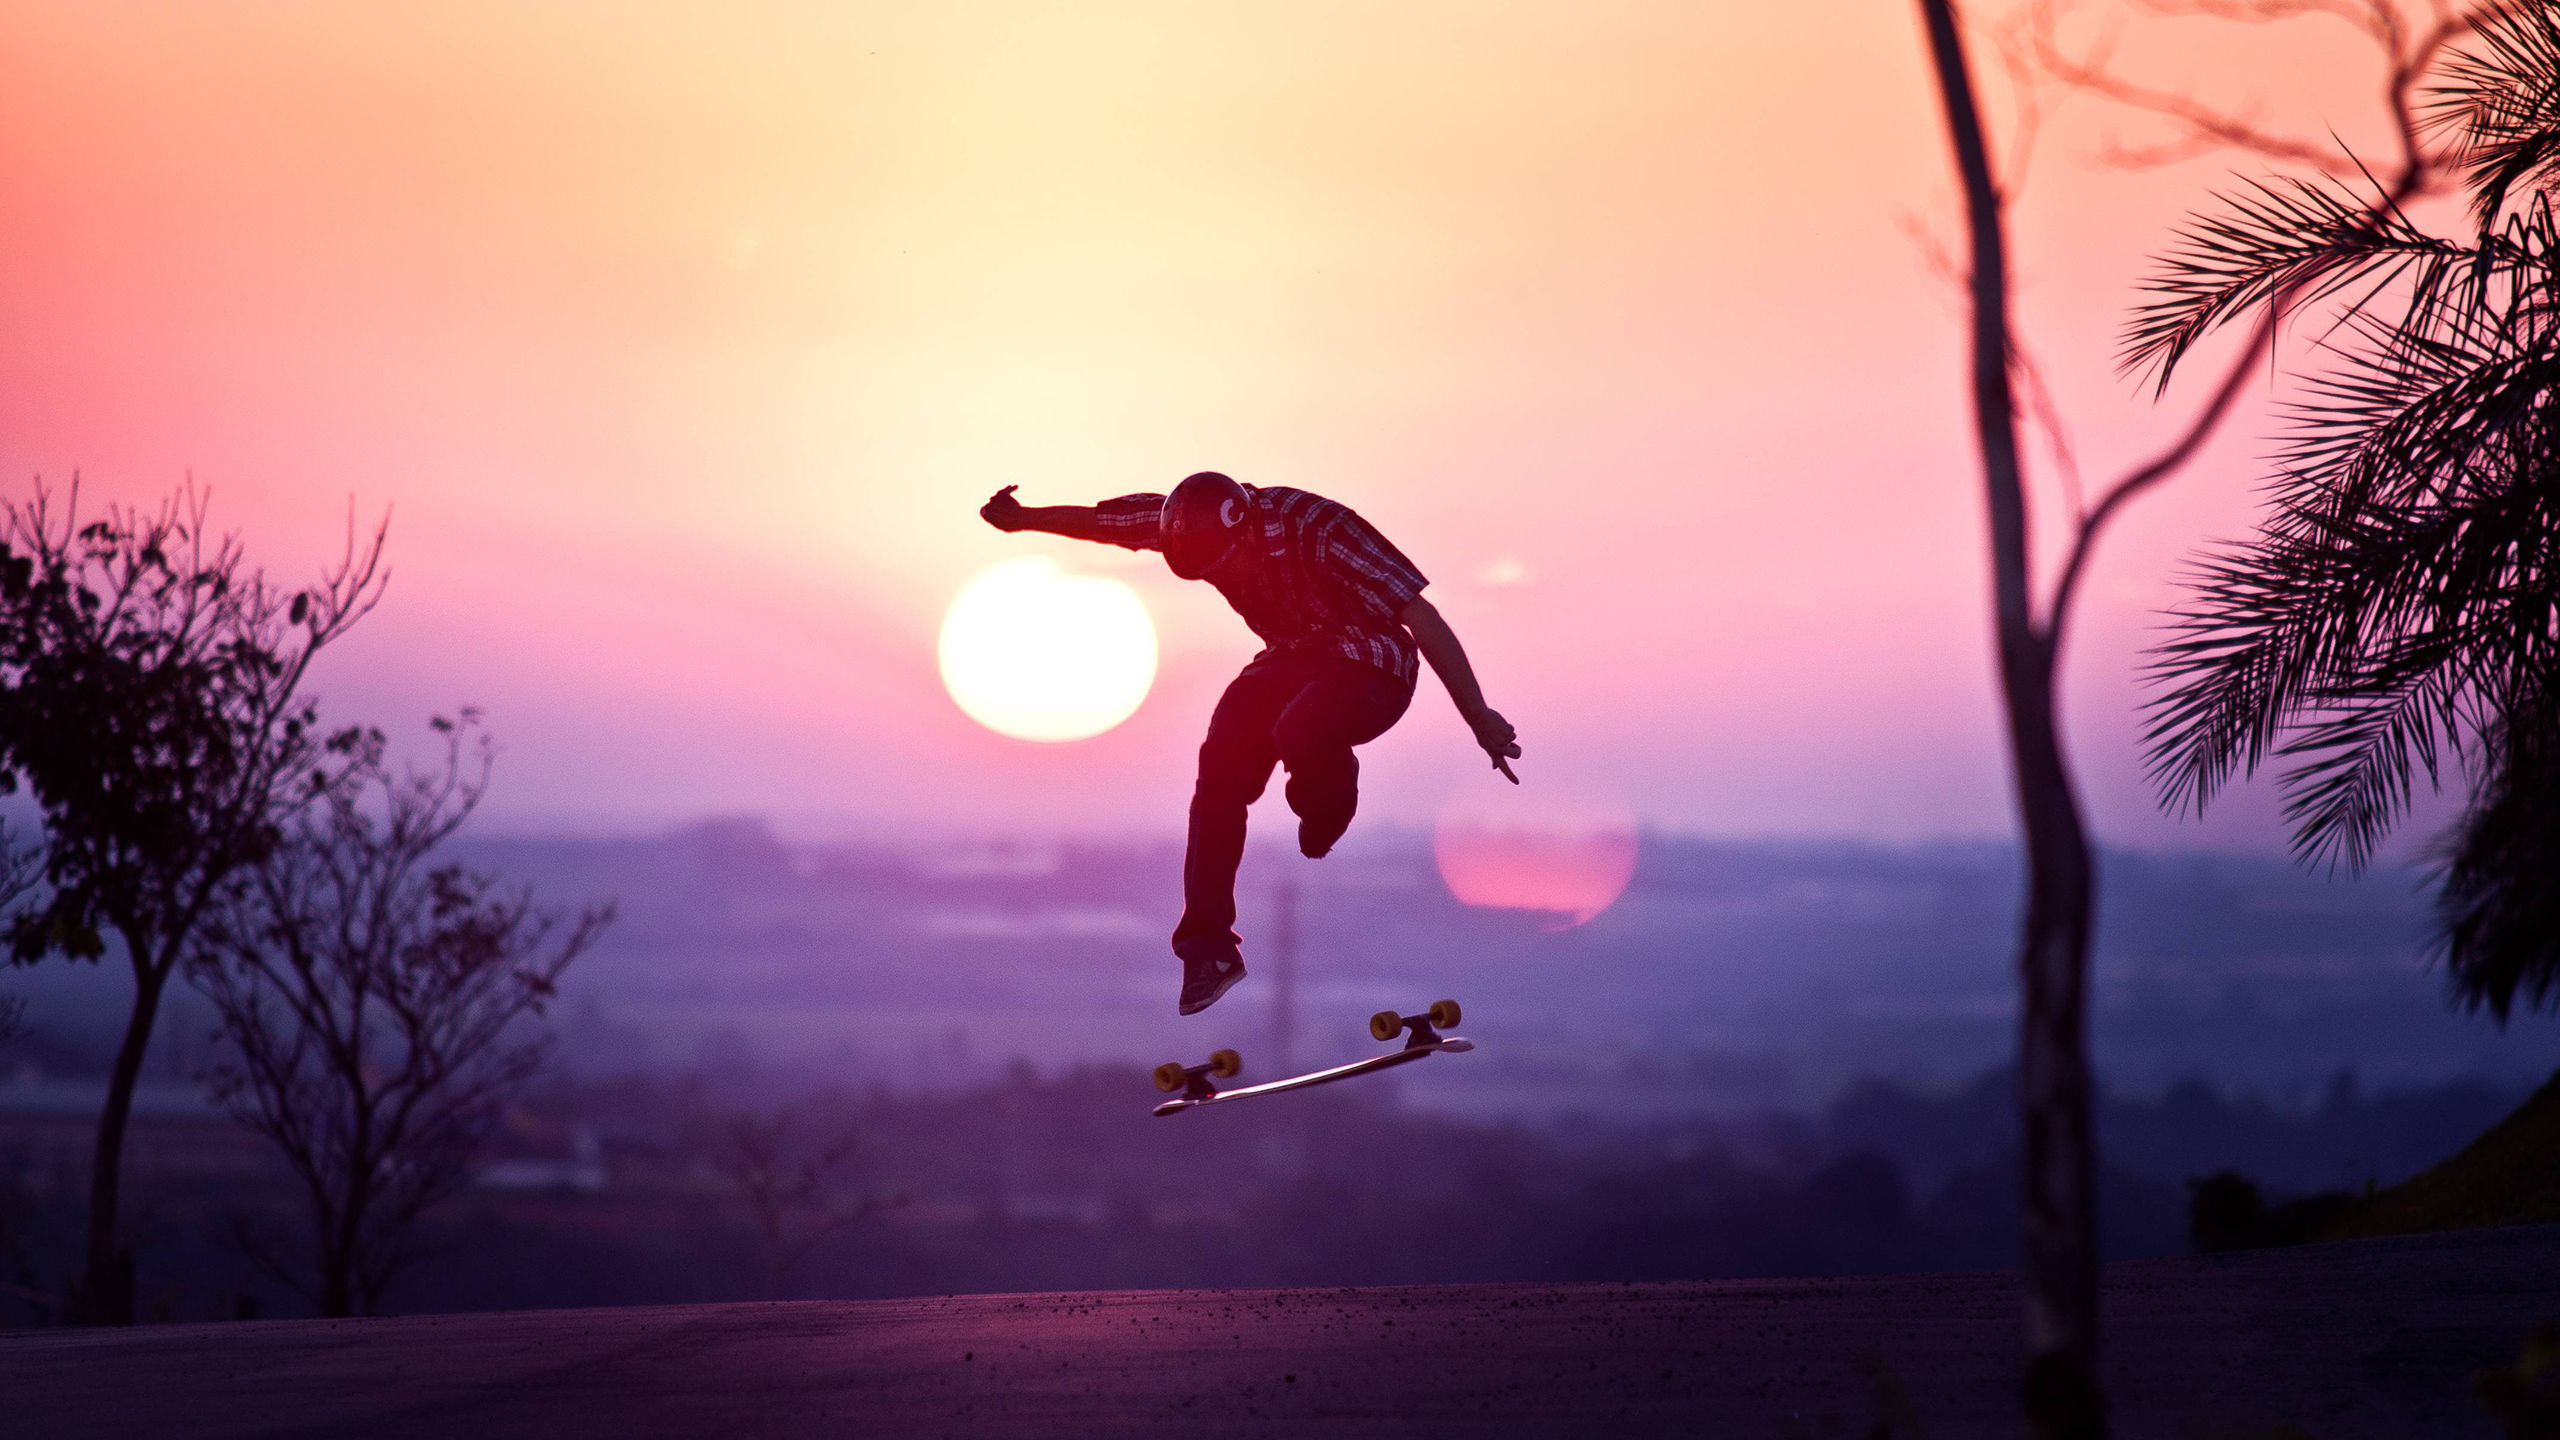 Skateboard Wallpaper Ideas – How to Decorate Your Walls